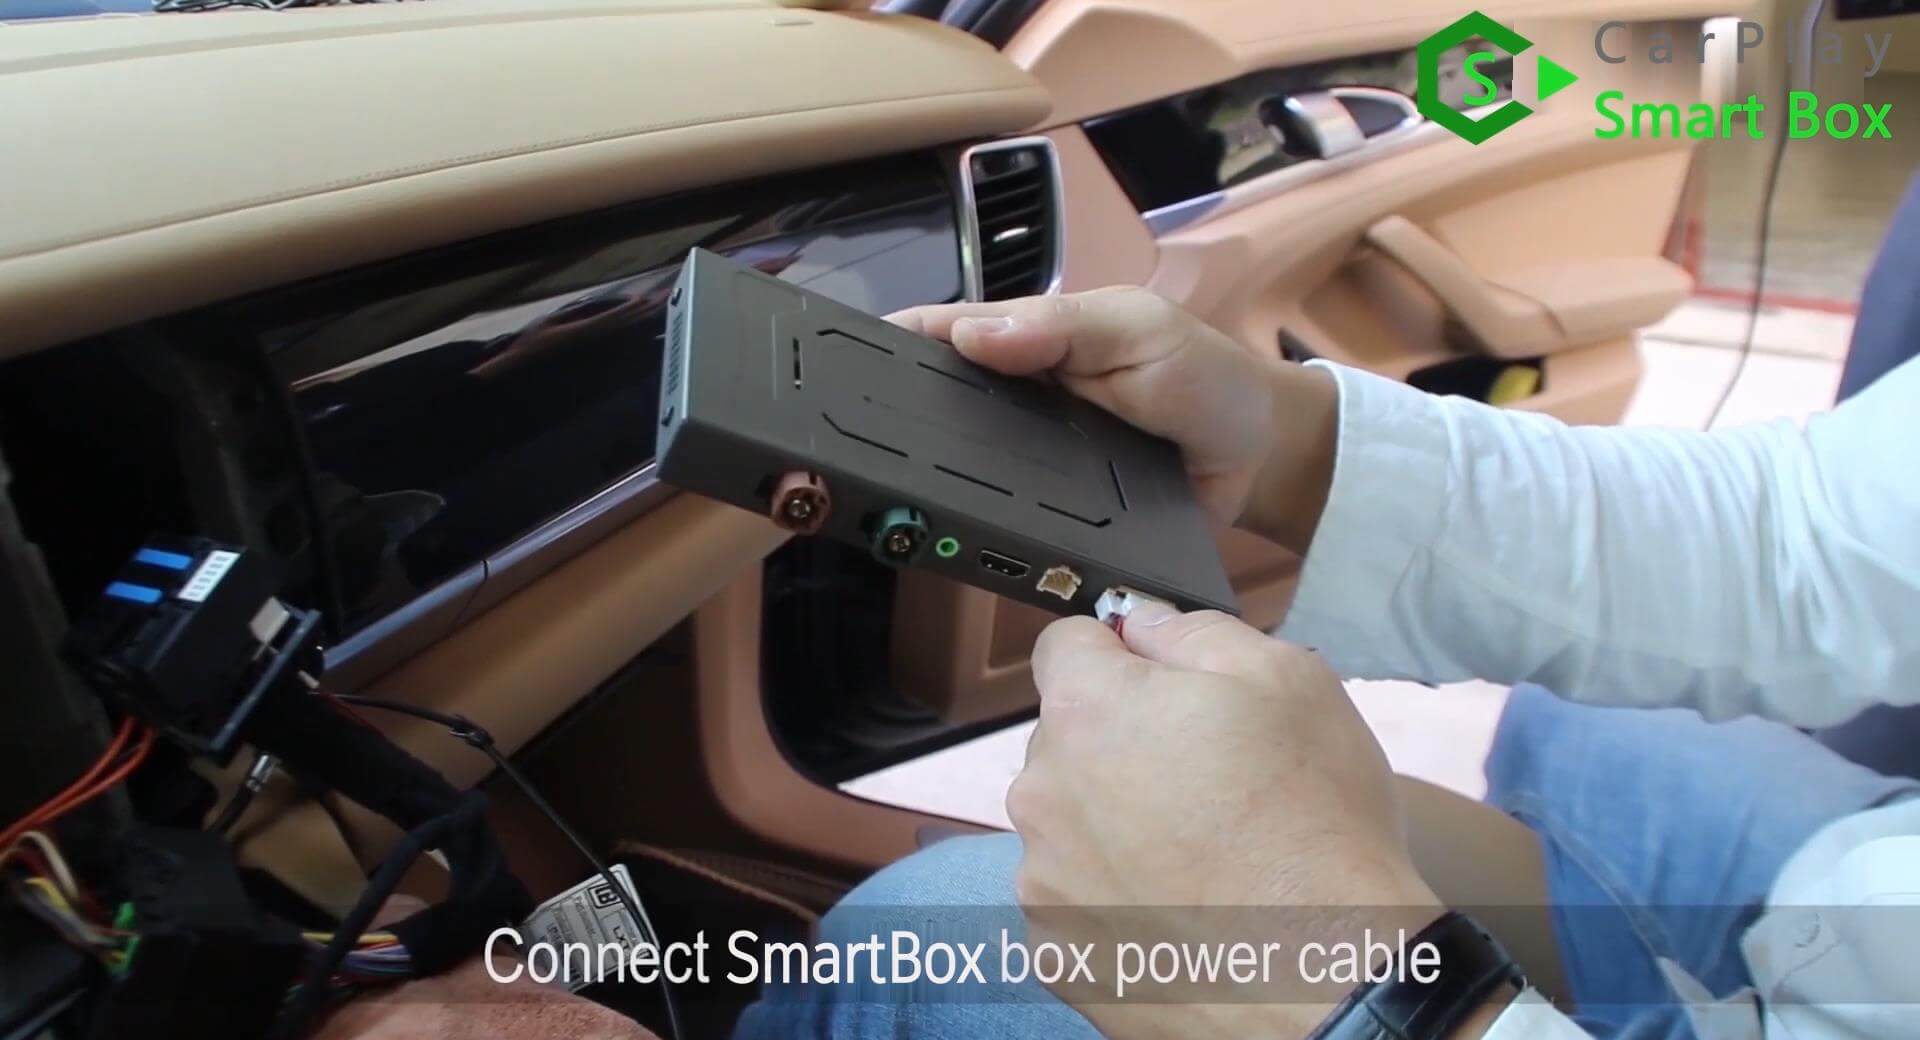 14. Connect Smart Box box power cable - Step by Step Retrofit wireless CarPlay Smart Box on Porsche Panamera PCM3.1 Head Unit - CarPlay Smart Box